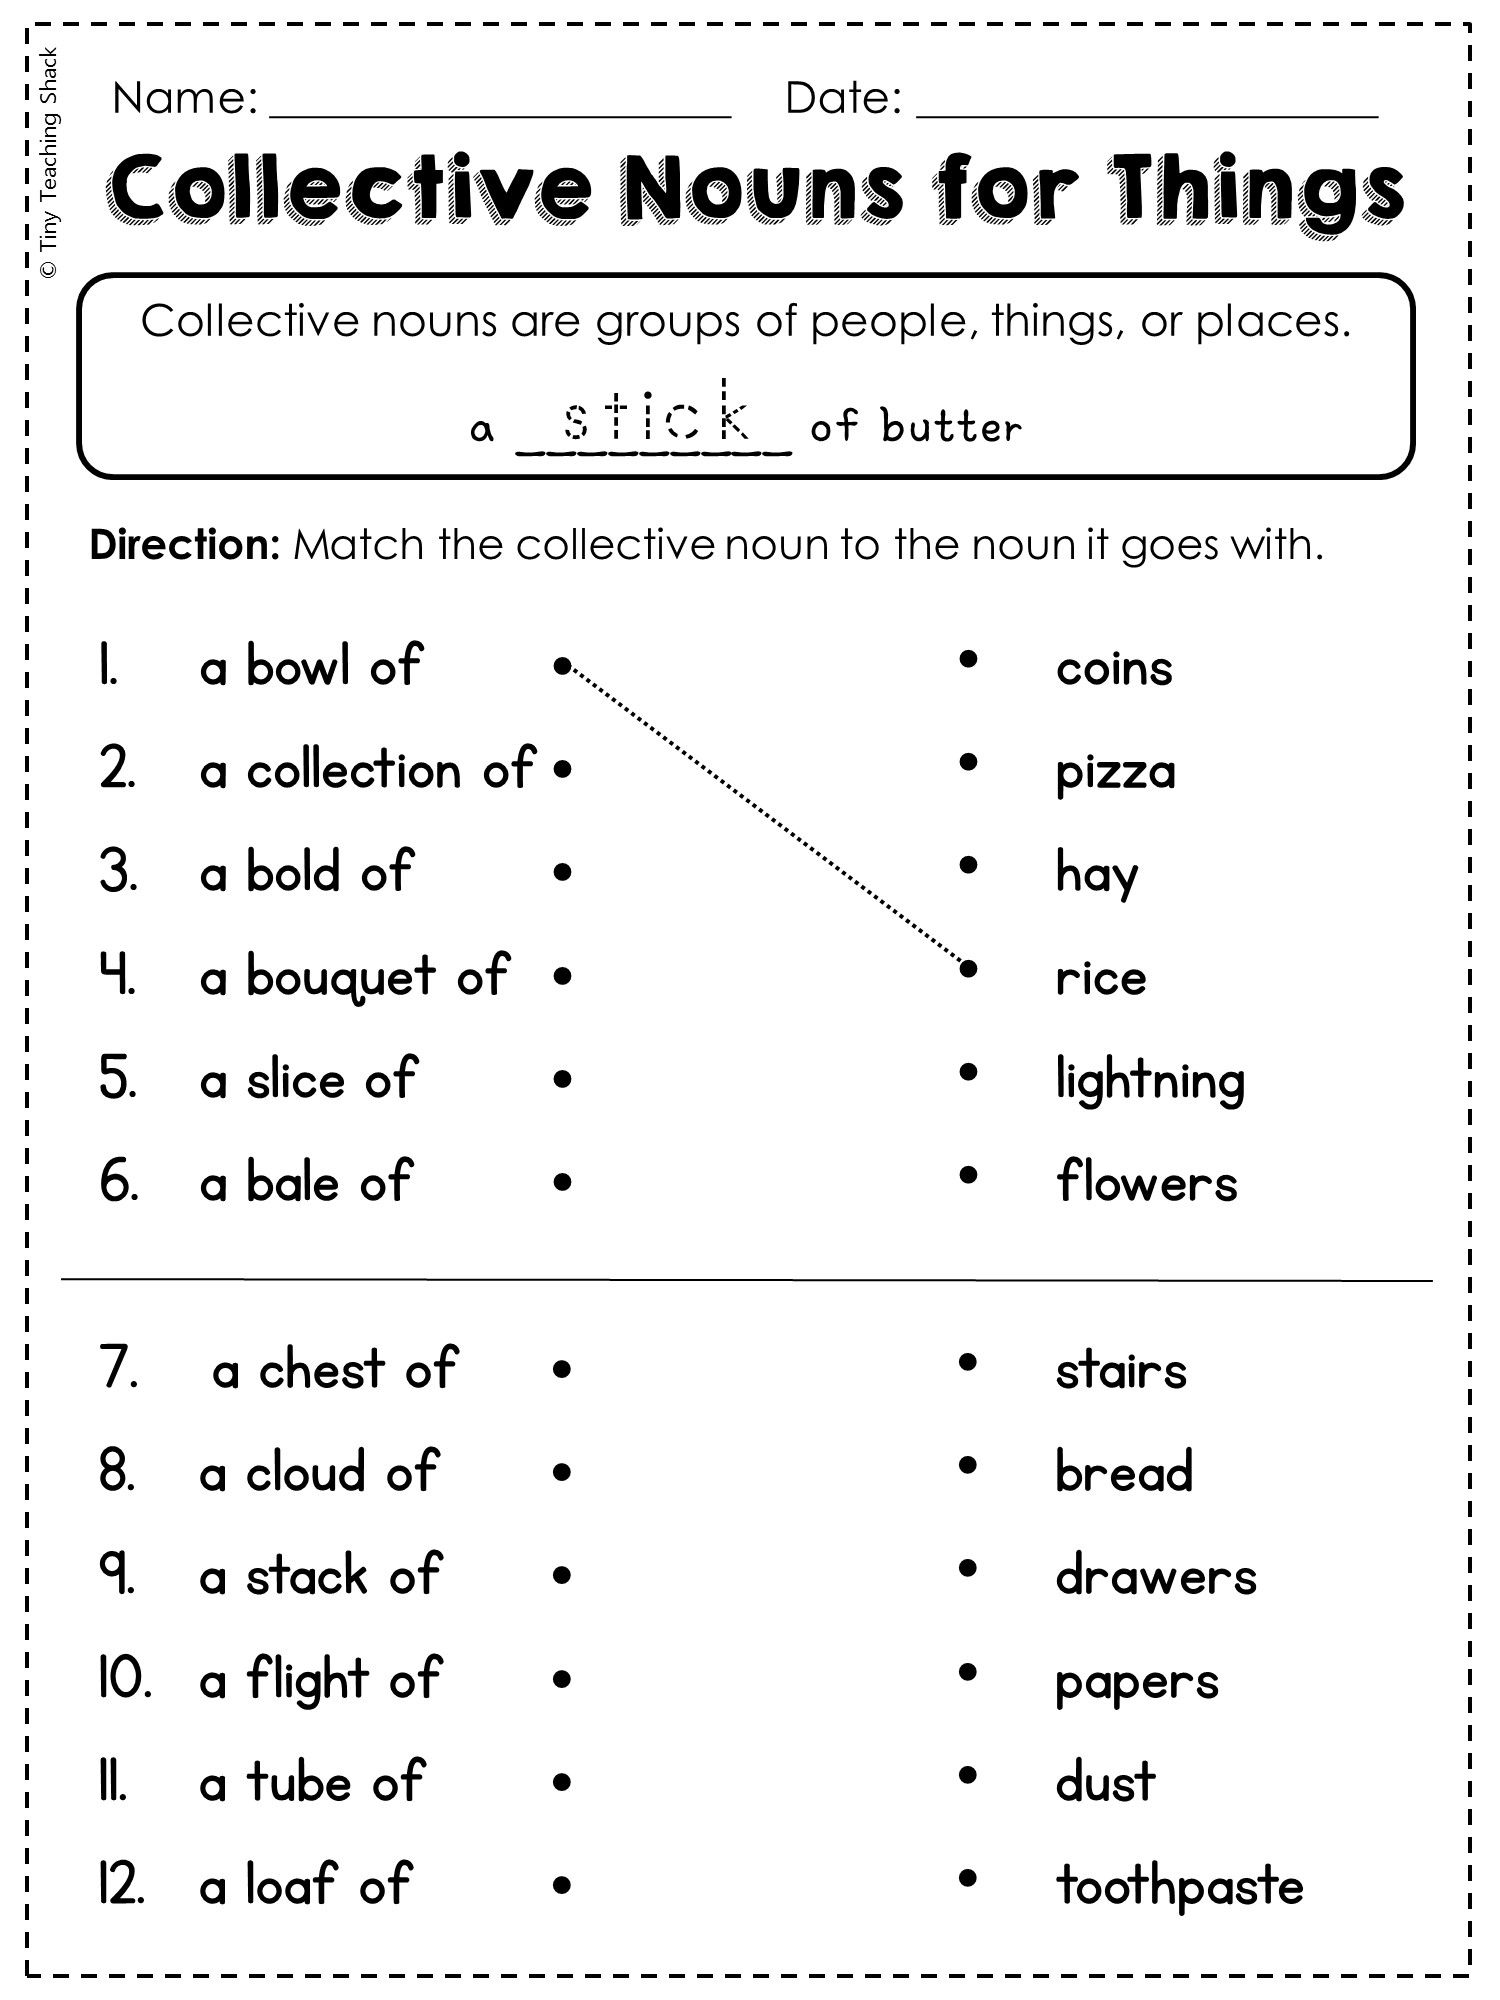 2nd grade language arts and grammar practice sheets freebie common core or not mrs sziggy. Black Bedroom Furniture Sets. Home Design Ideas